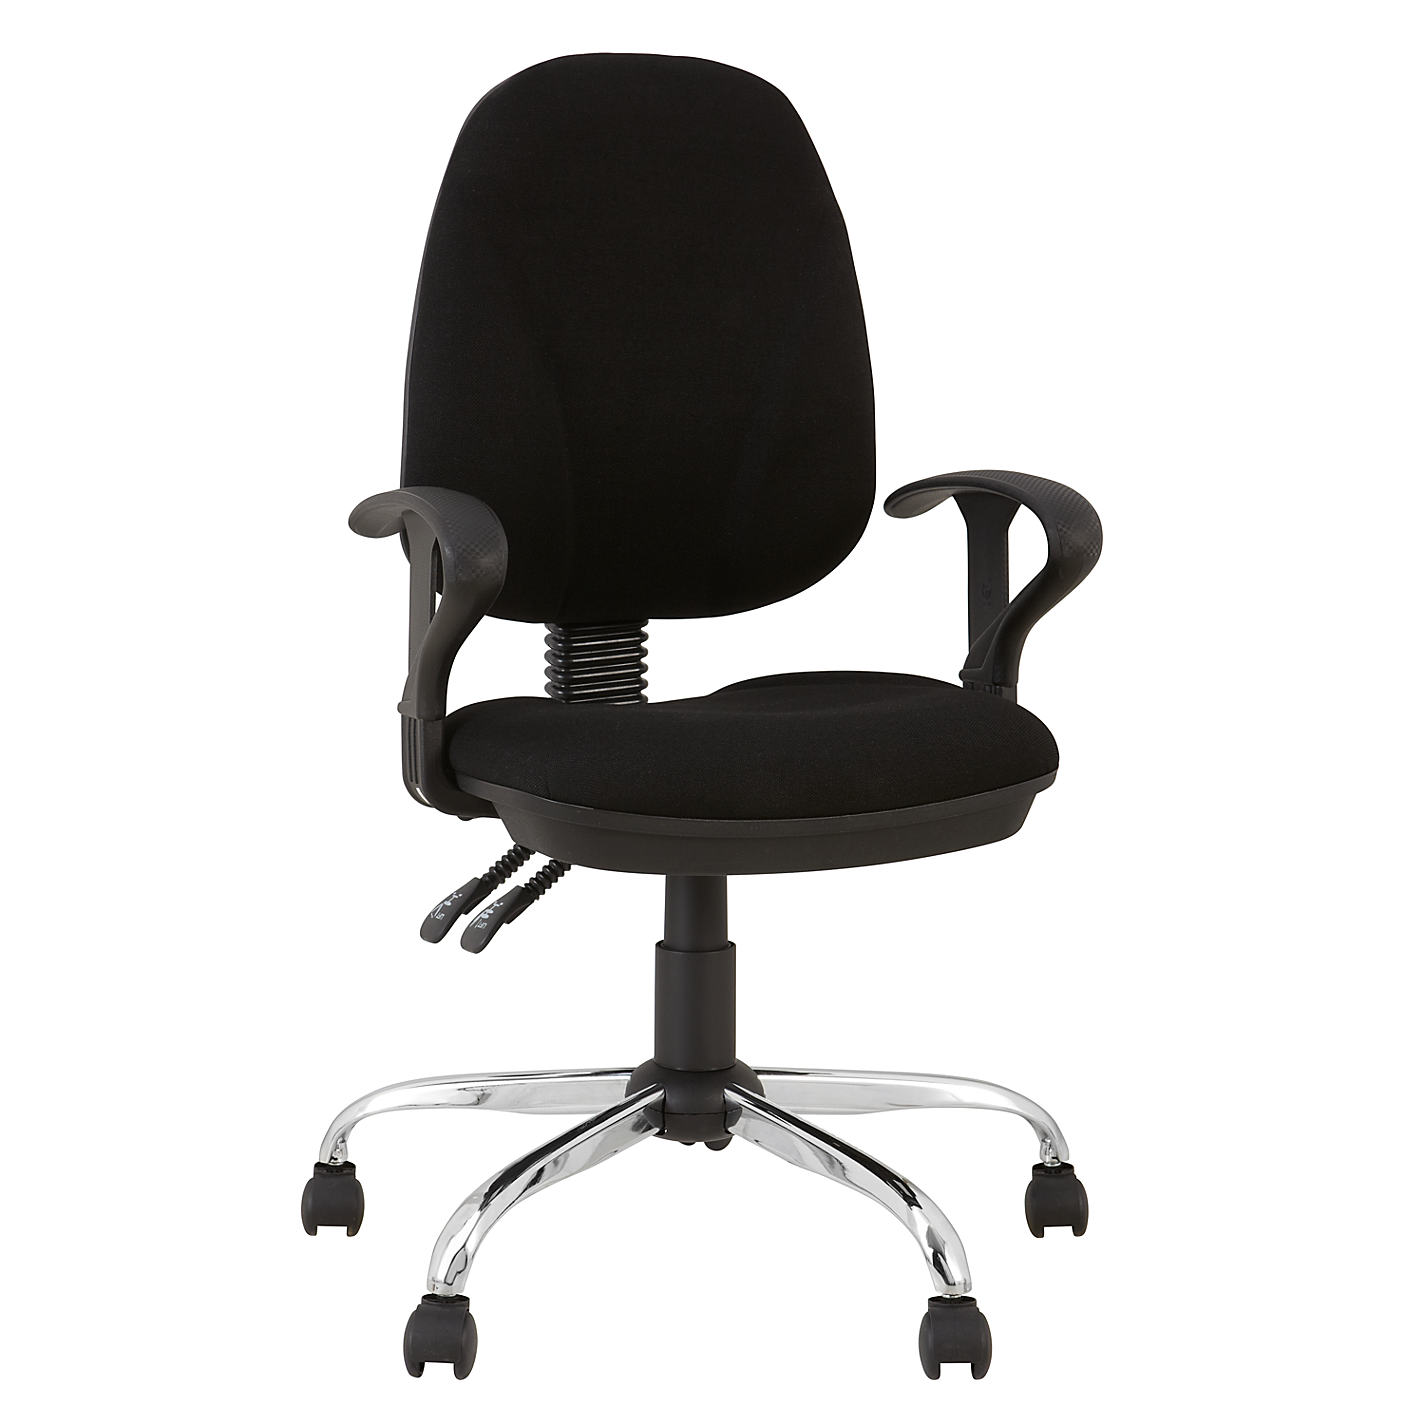 ergonomic chair bangladesh cheap lounge cushions 1 x boxed riley full back gas lift swivel office